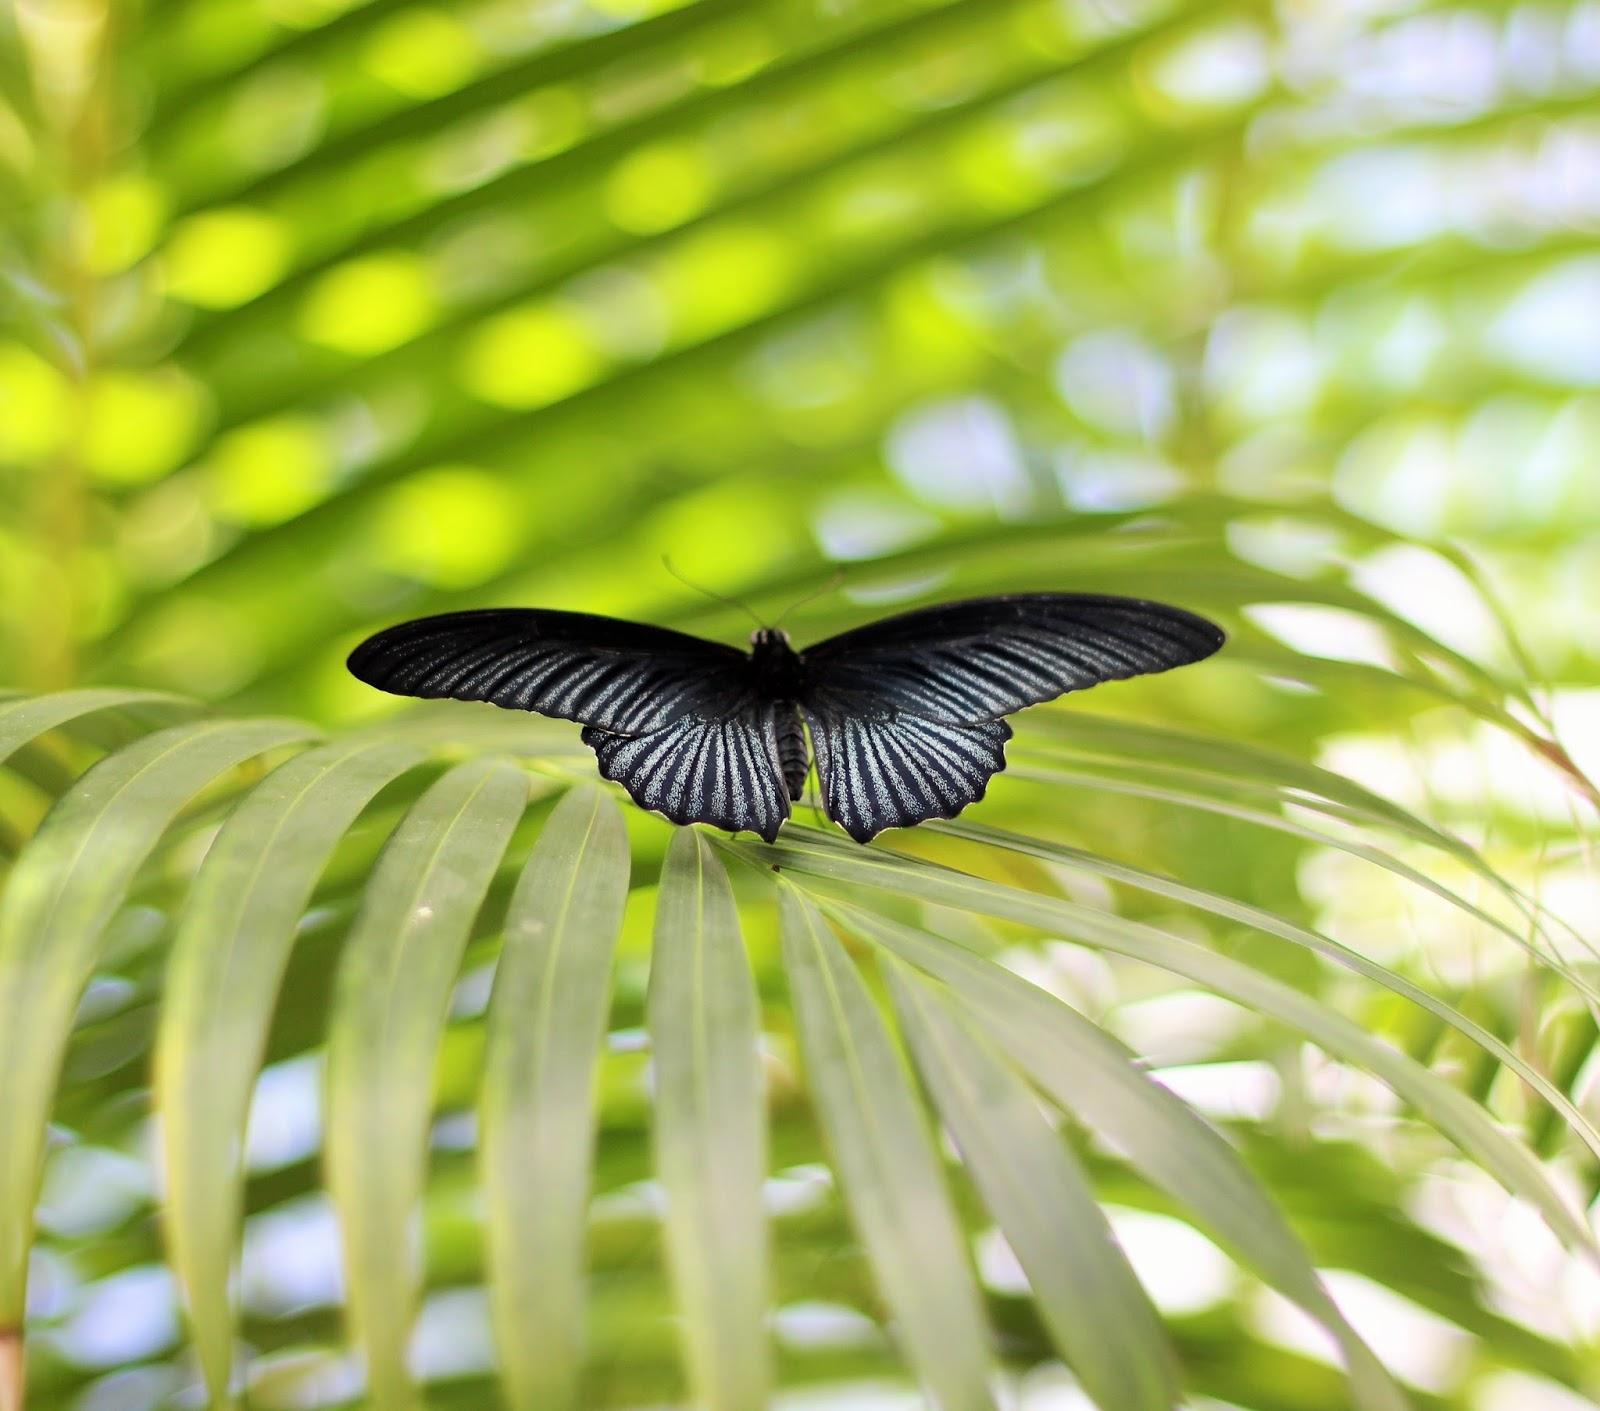 Photo of a black butterfly at the Butterfly Farm in Marigot, Sint Maarten